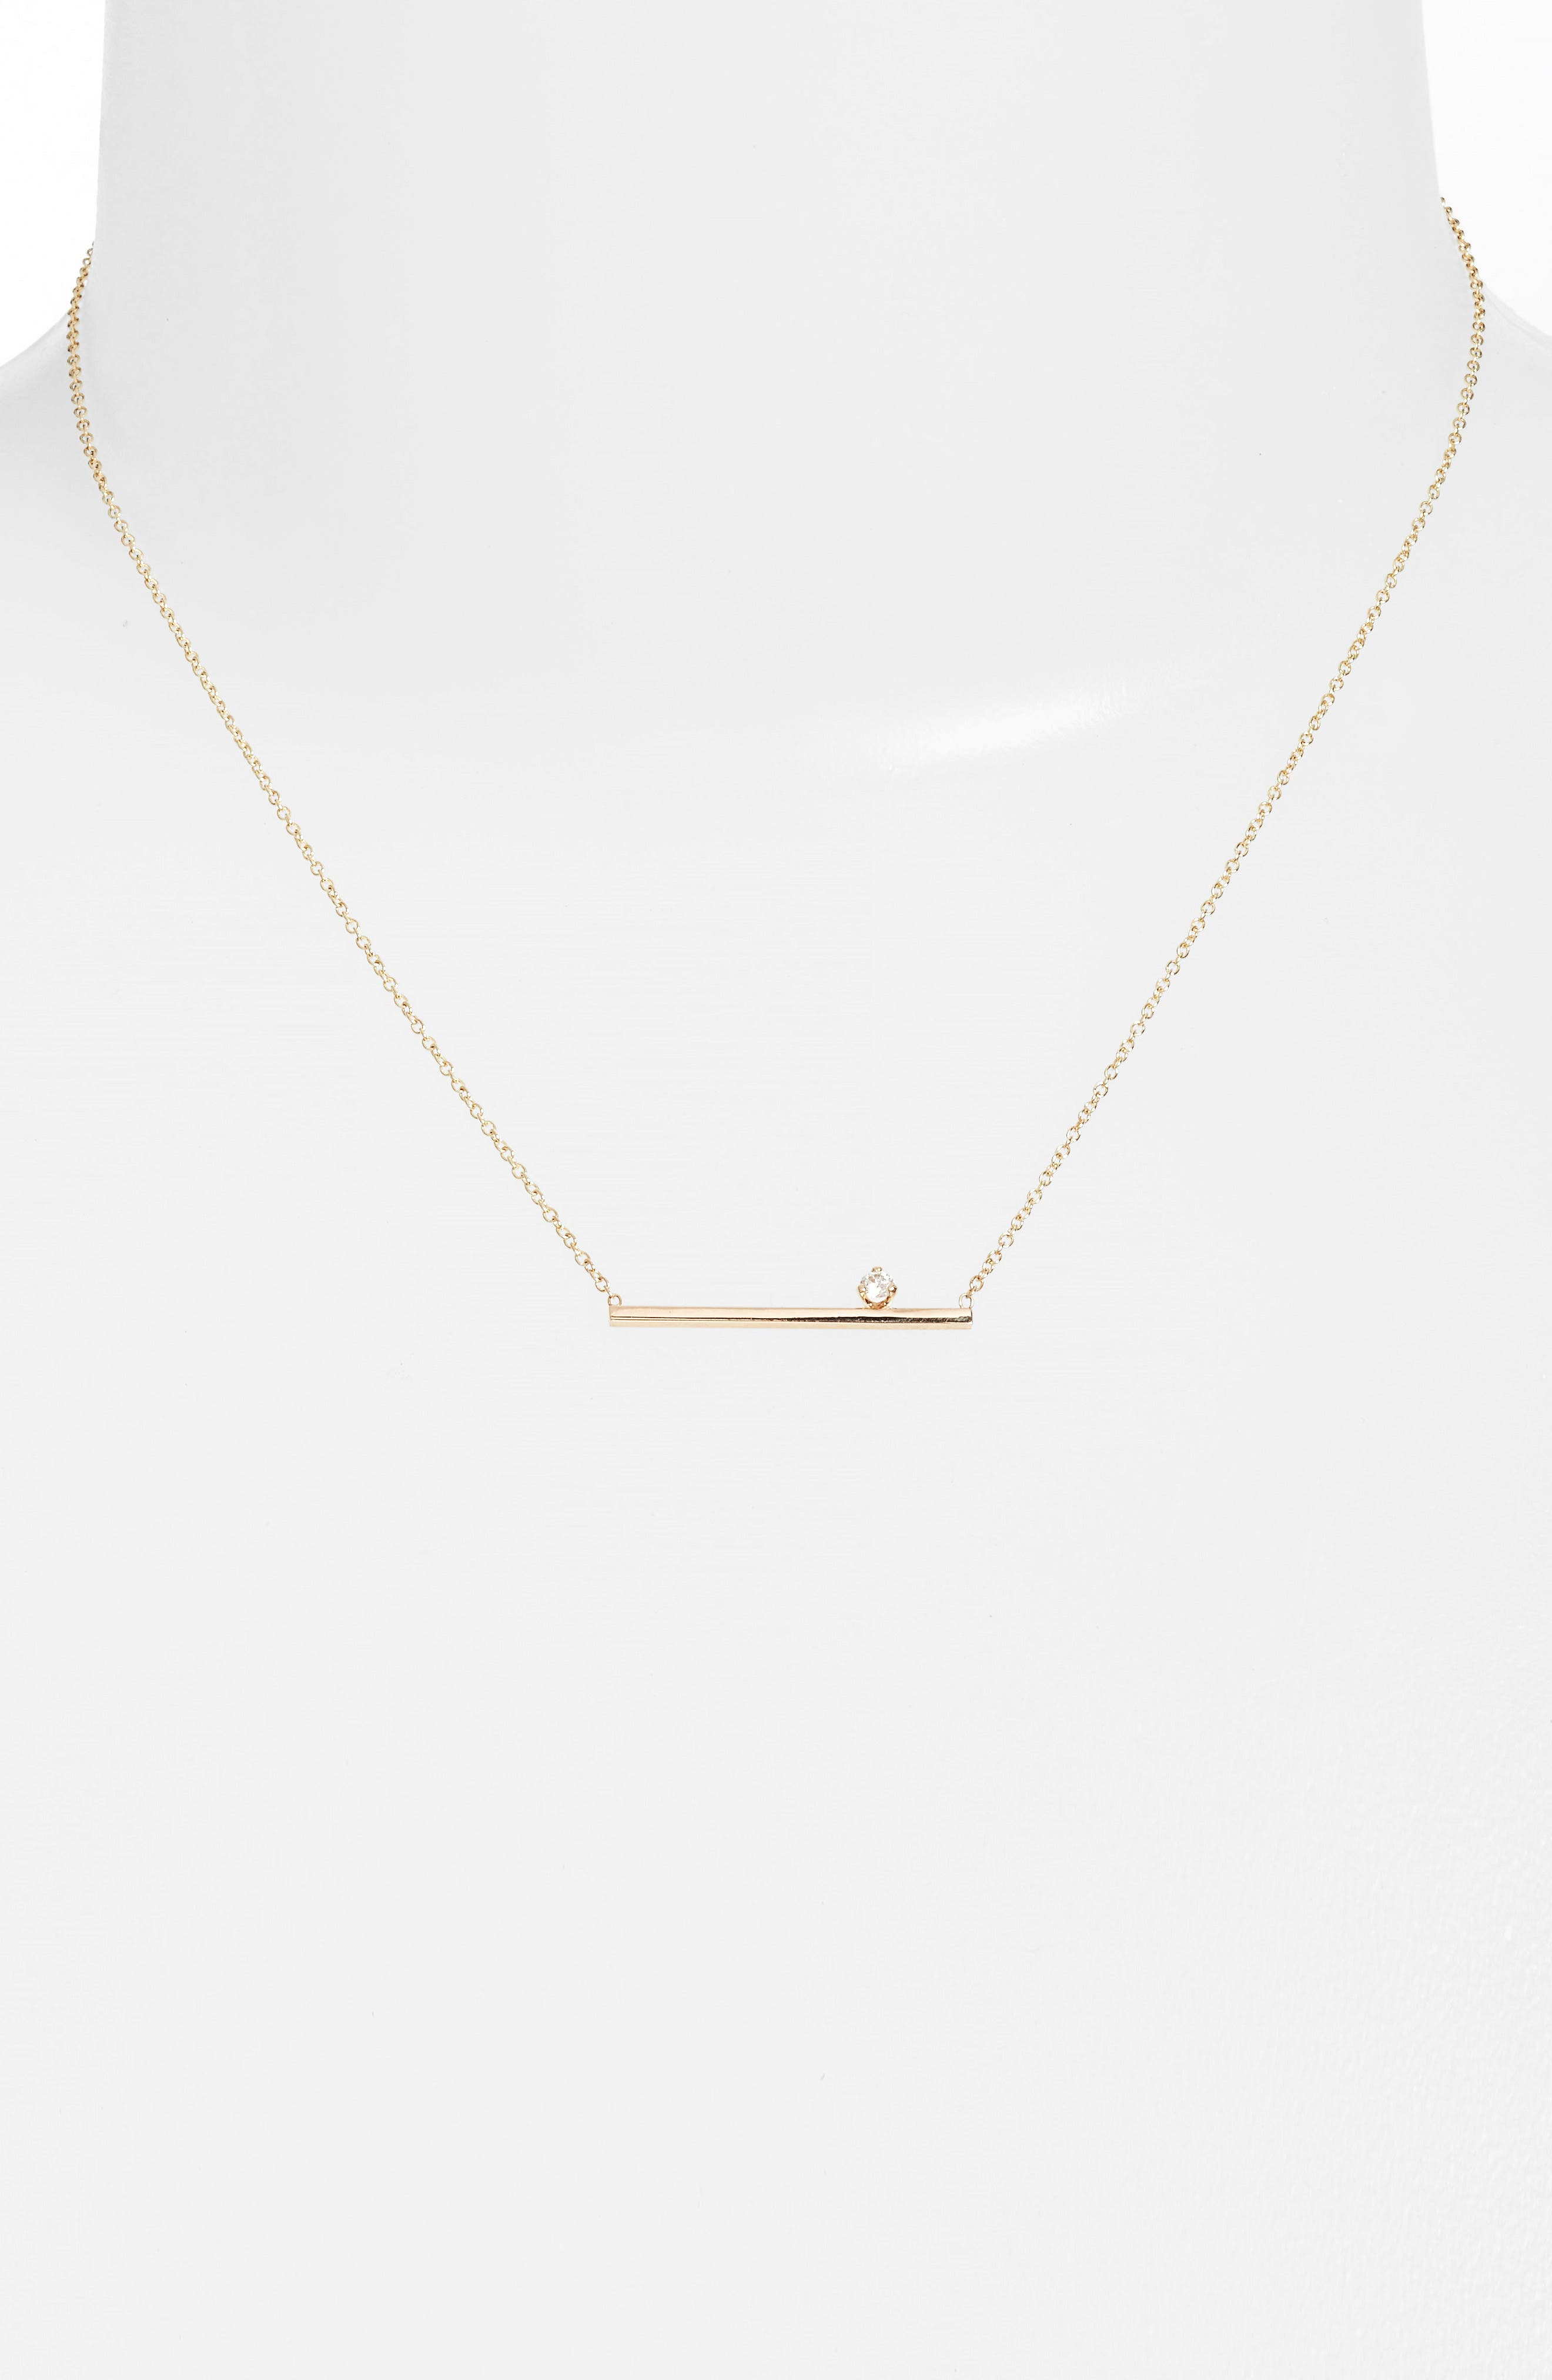 Floating Diamond Pendant Necklace,                             Main thumbnail 1, color,                             Yellow Gold